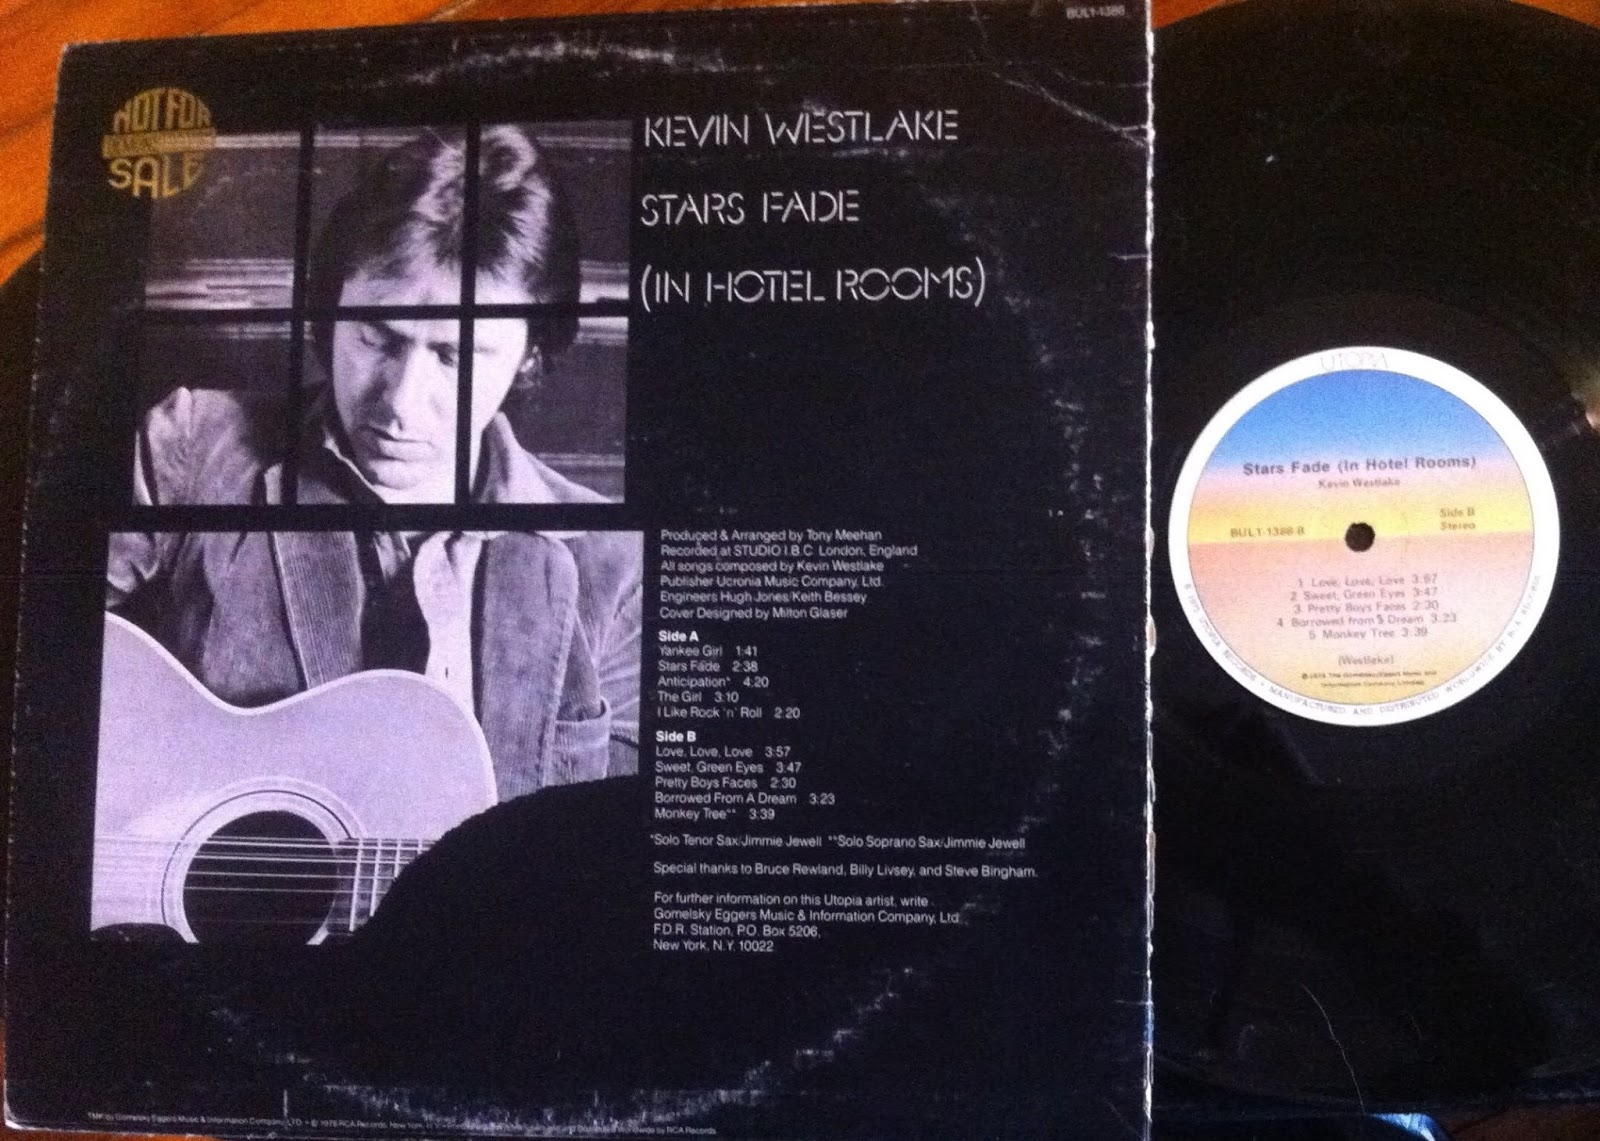 Thrift Store Music: Kevin Westlake - Stars Fade (In Hotel Rooms)